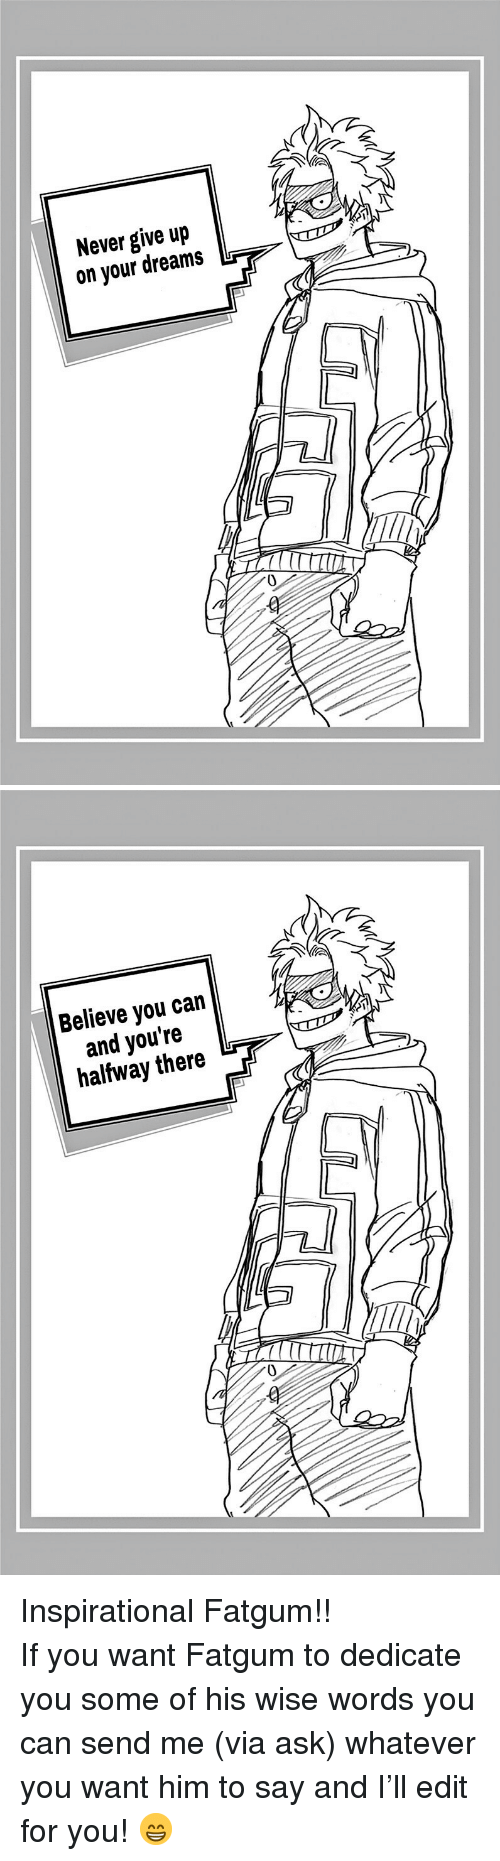 Dreams, Never, and Ask: Never give up  on your dreams  0   Believe you can  and you're  halfway there  0 <p>Inspirational Fatgum!! </p>  <p>If you want Fatgum to dedicate you some of his wise words you can send me (via ask) whatever you want him to say and I'll edit for you! 😁</p>